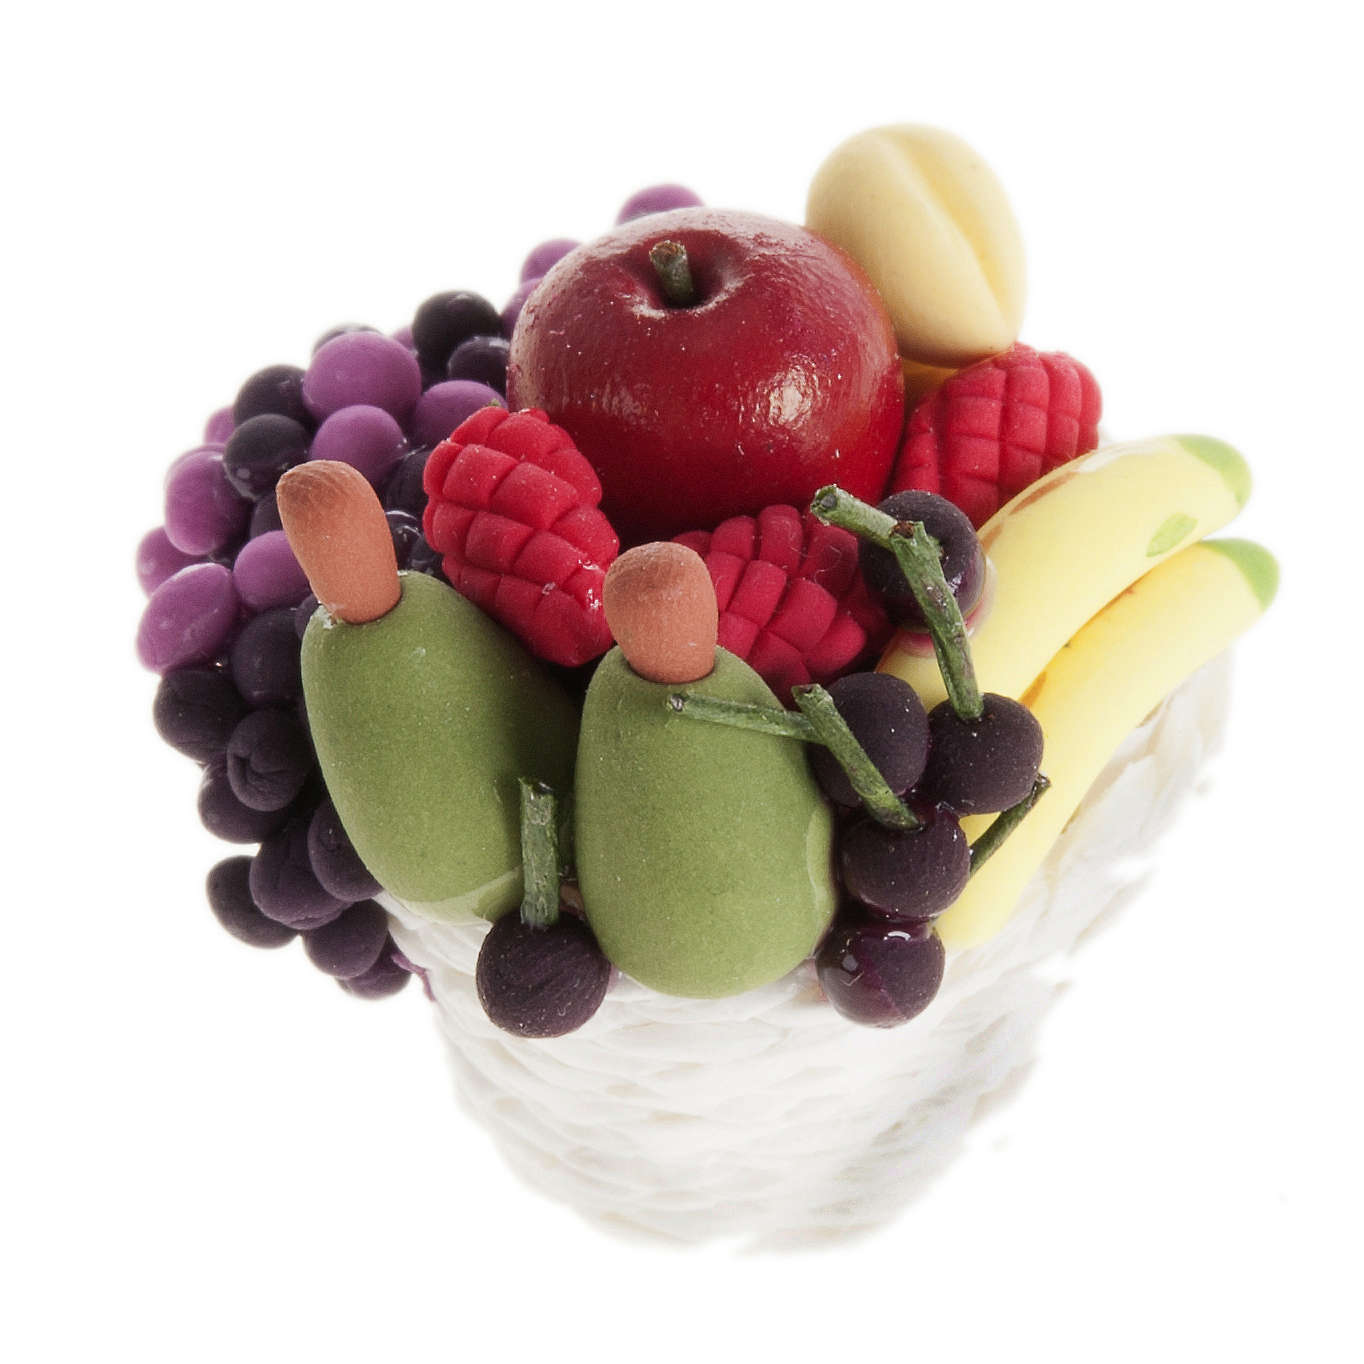 Nativity scene accessory, basket with diffent kinds of fruit 4